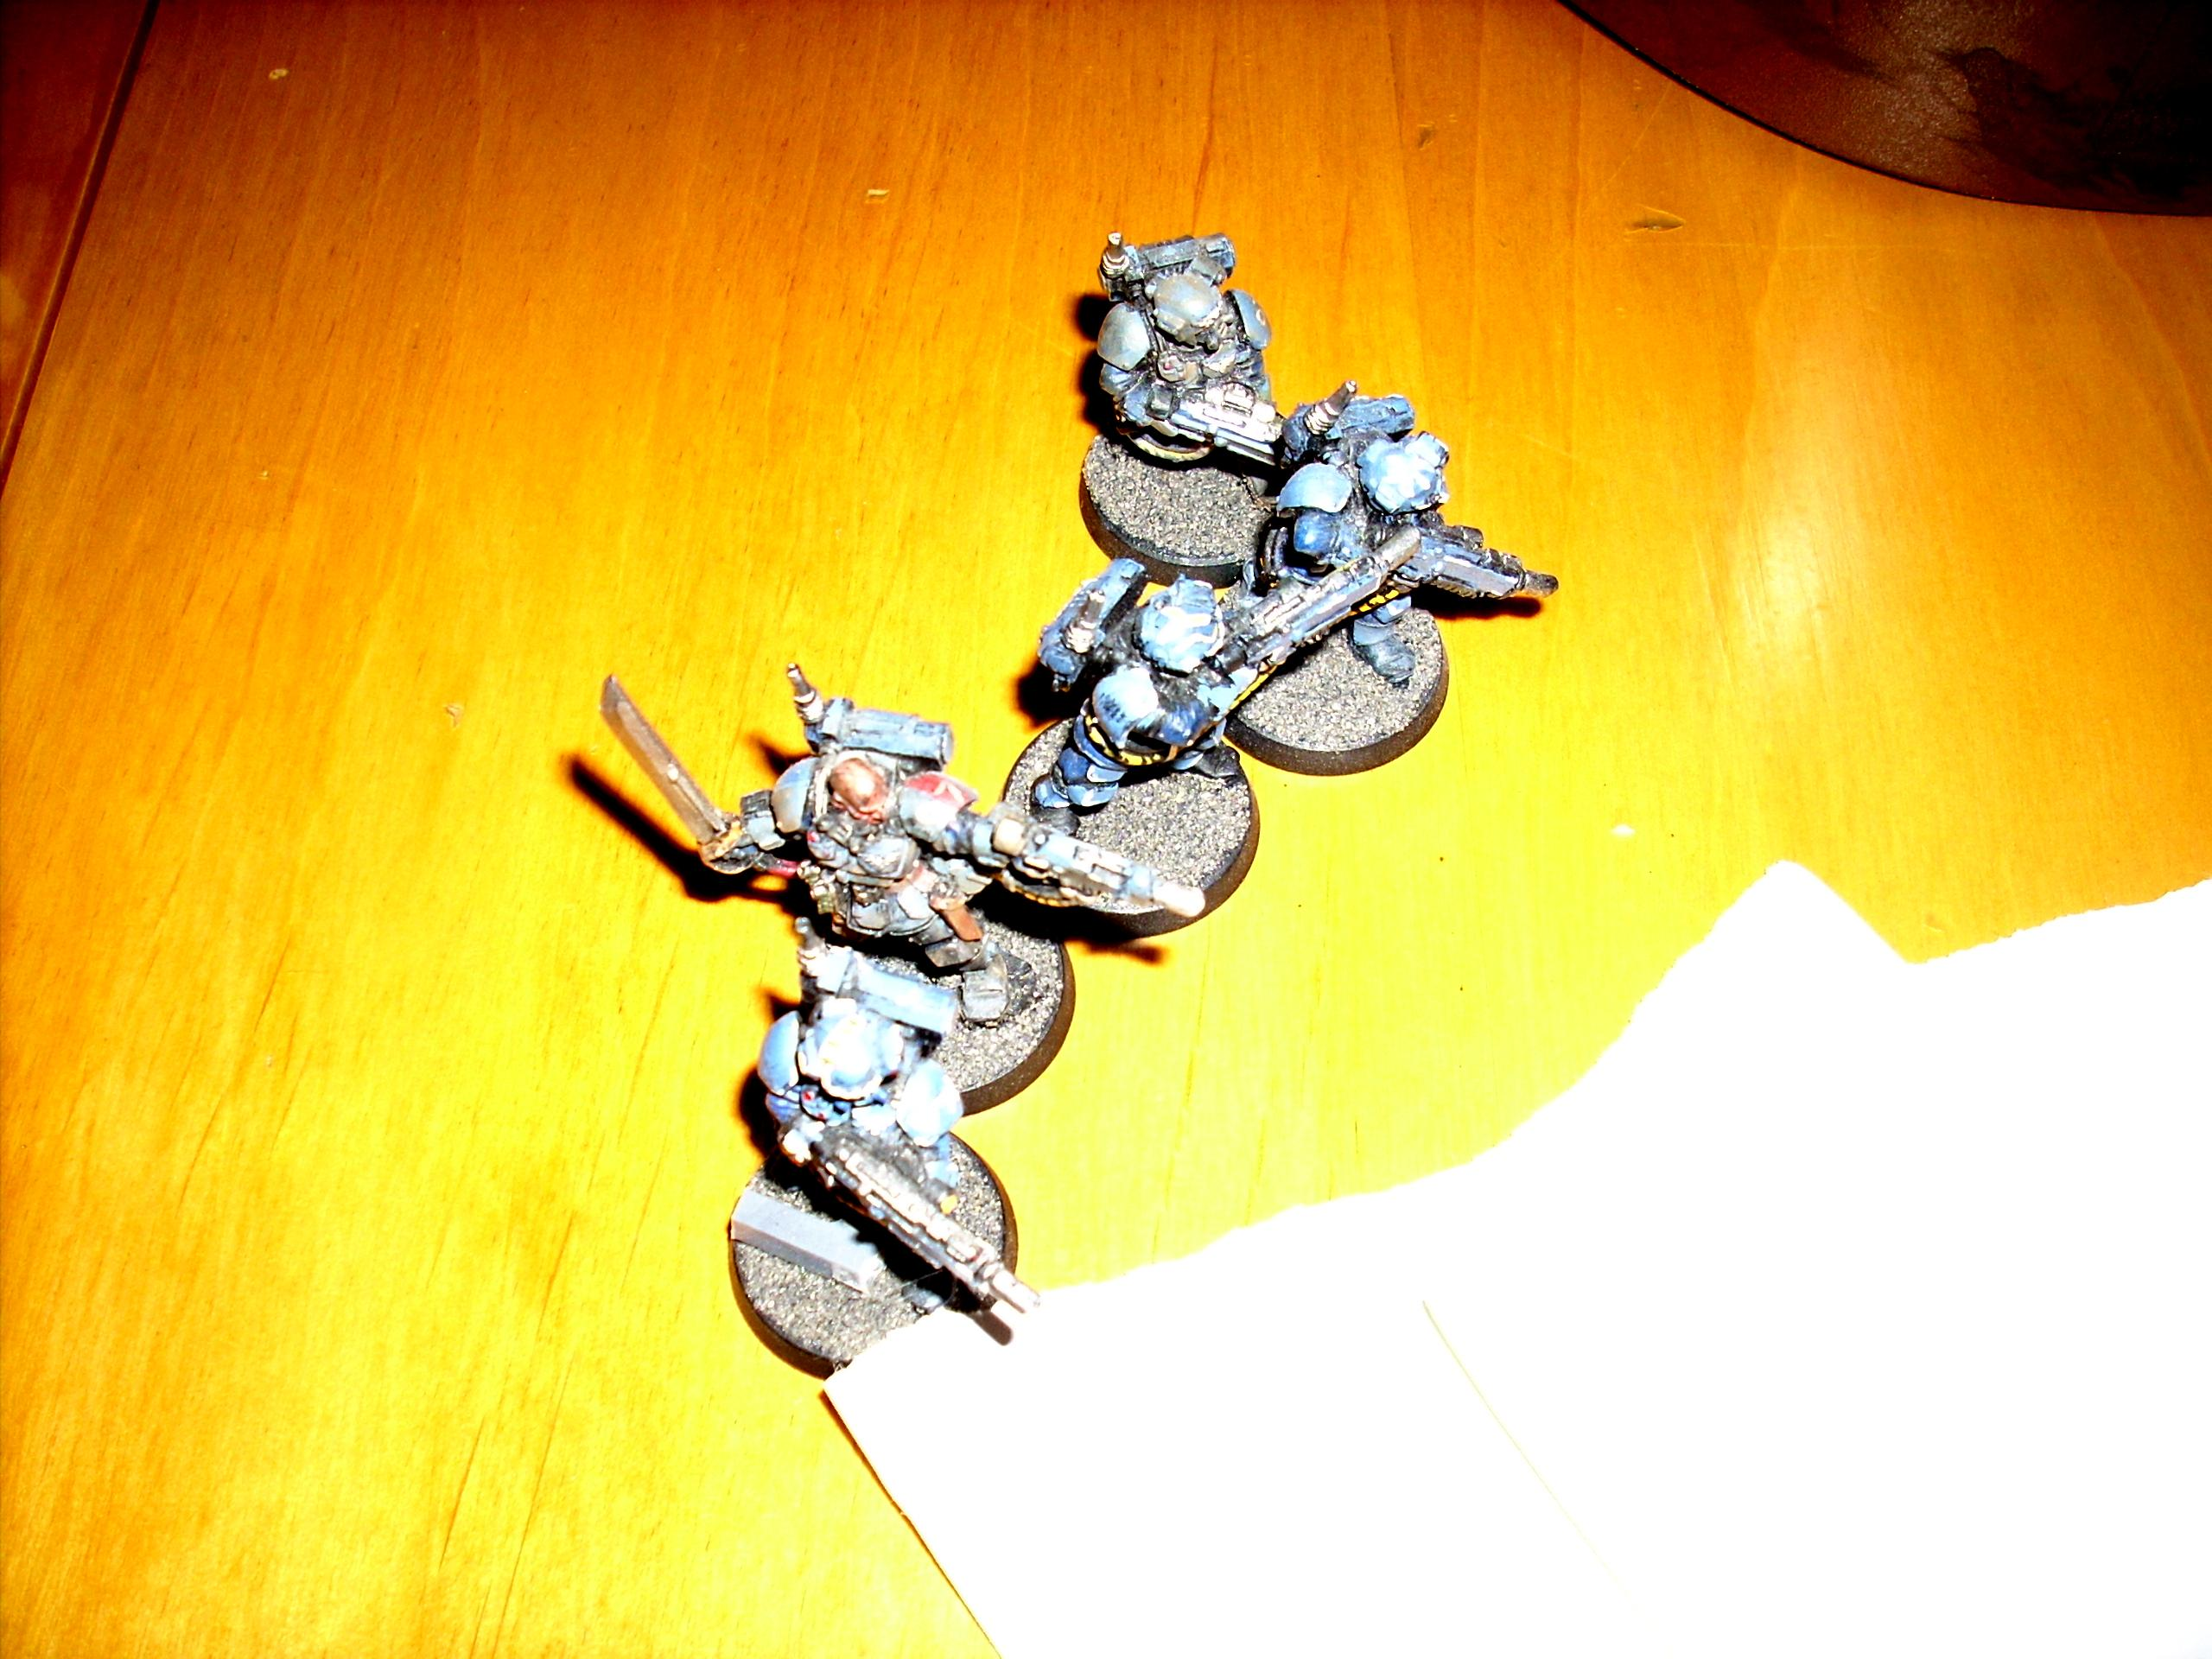 750, Battle, Guard, Imp, Imperial Guard, Orks, Report, Small